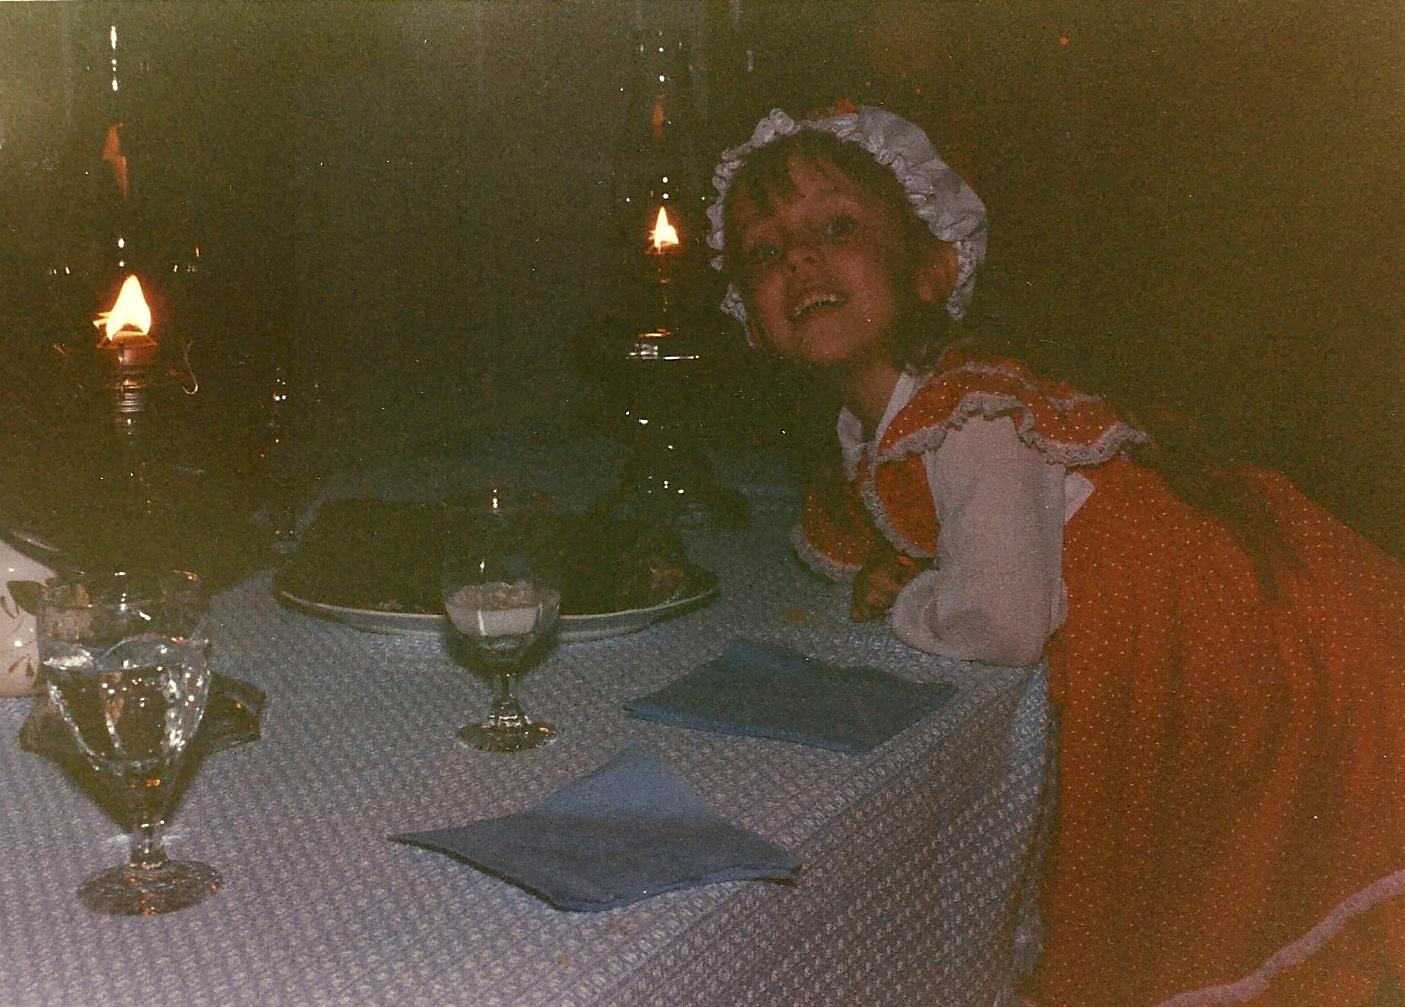 A young me, proudly posing before our dimly-lit colonial dinner table. Apparently, they pulled out all the stops in George Washington's day with blue paper napkins.